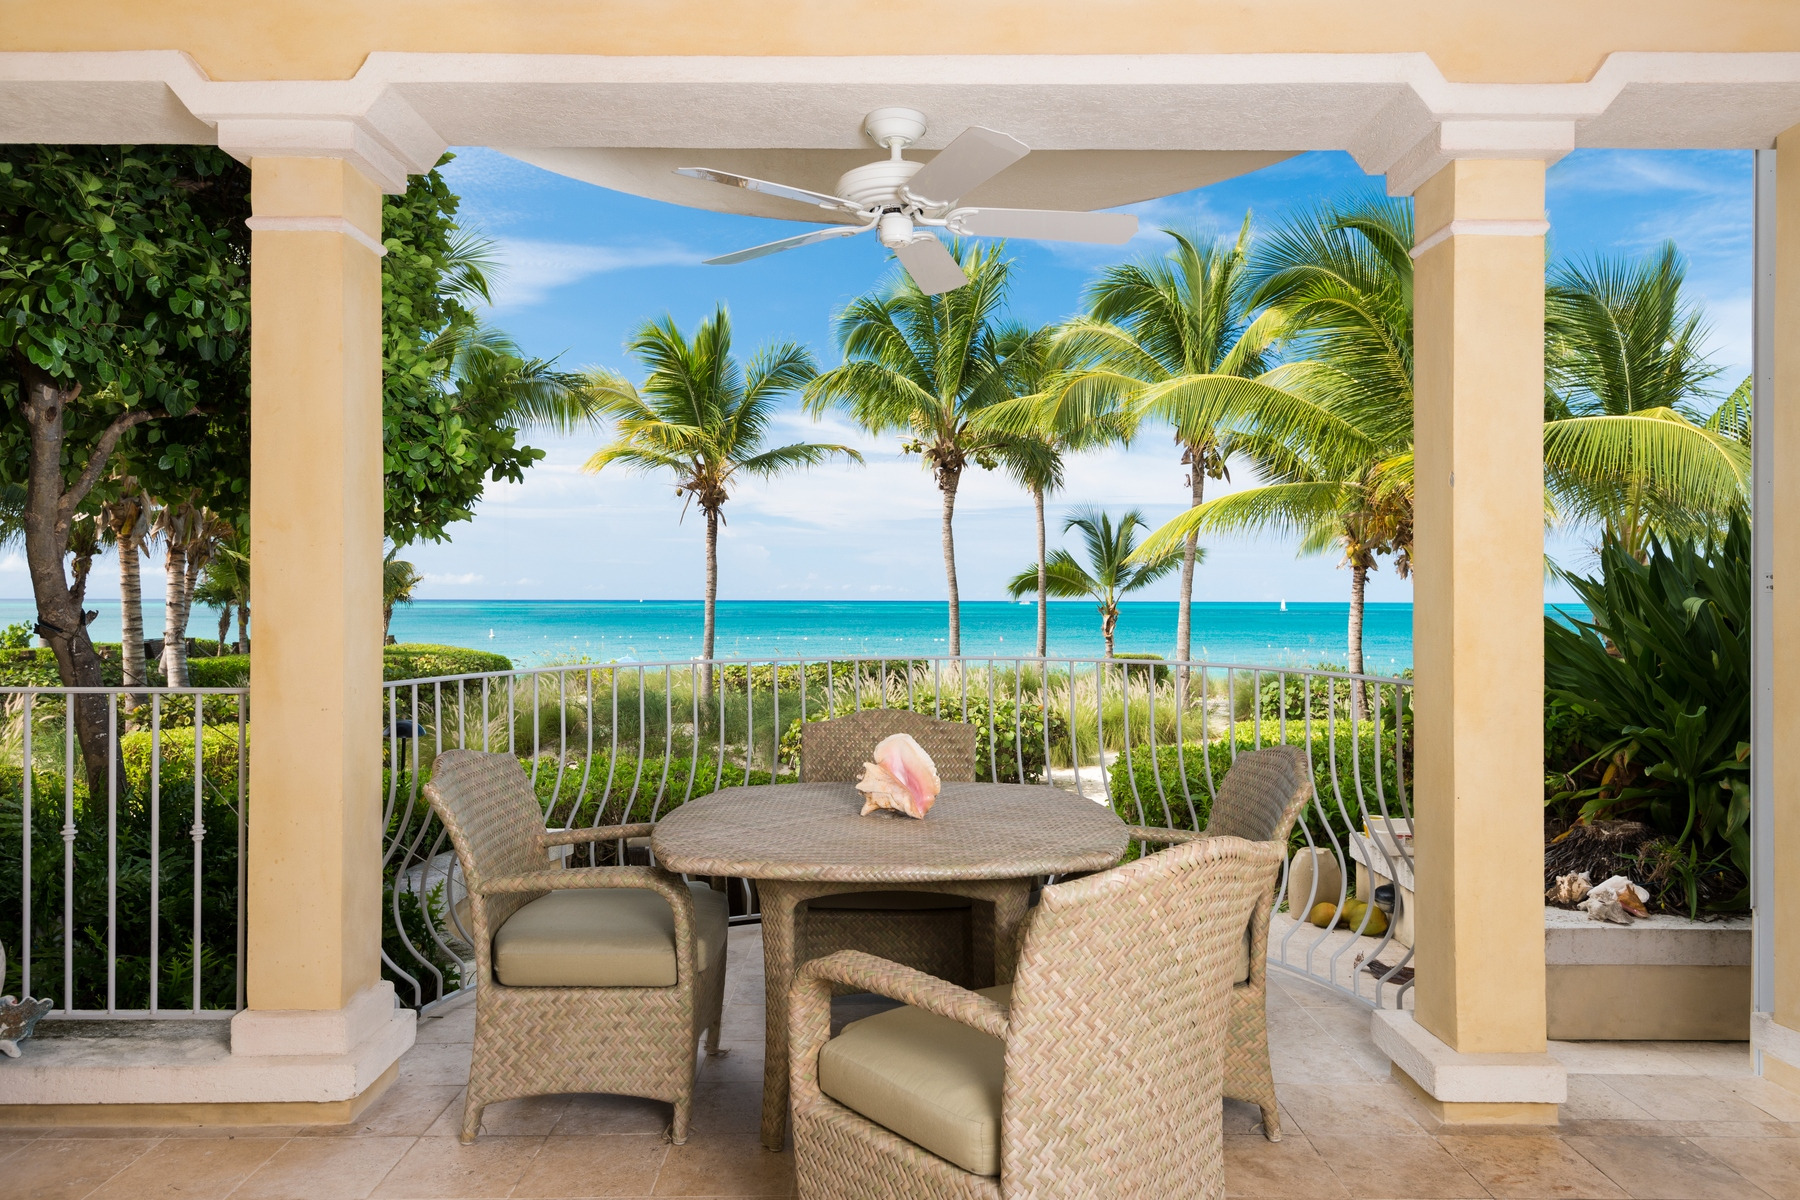 Condominium for Sale at Villa Renaisance - Suite 108 Villa Renaissance, Grace Bay, Providenciales Turks And Caicos Islands